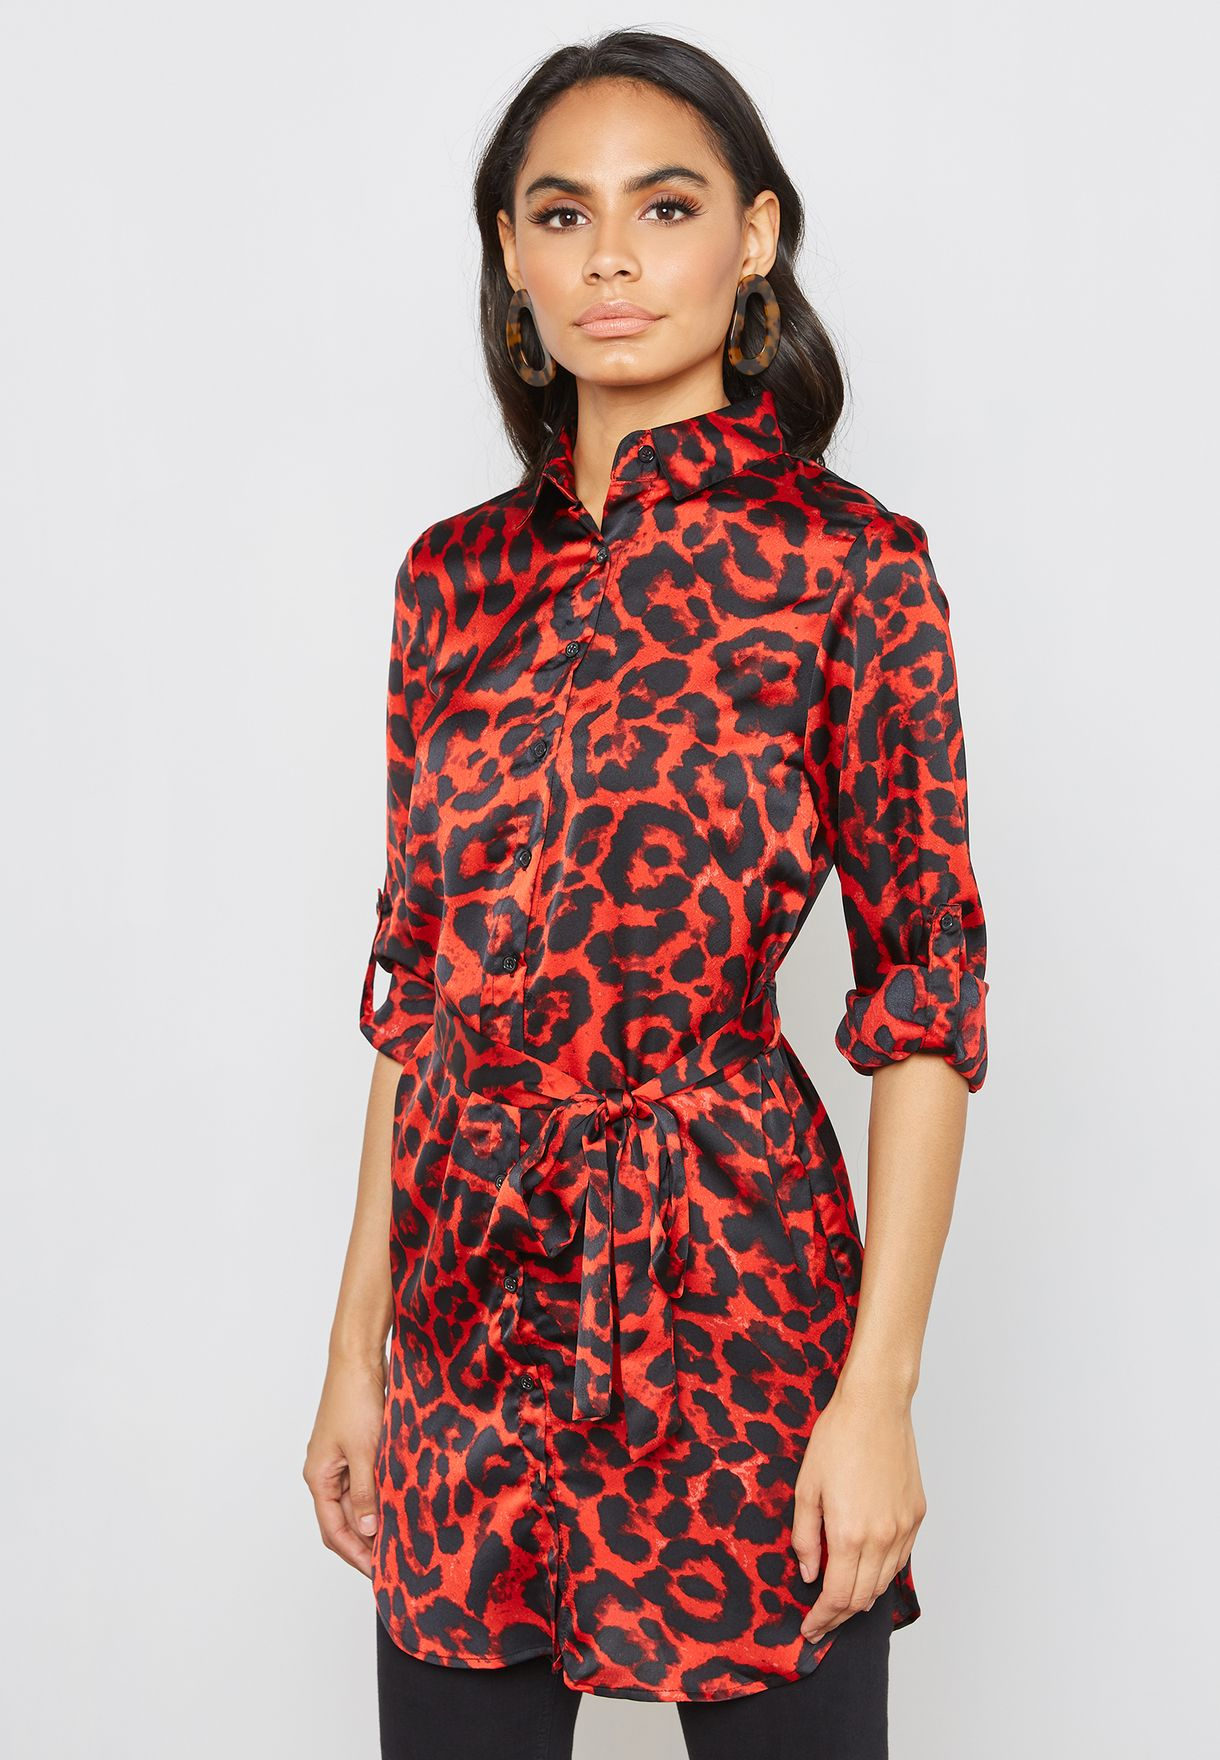 bfc4ea8cfe Shop Quiz prints Leopard Print Long Sleeve Shirt Dress 00100017707 for  Women in Saudi - QU110AT28CTZ